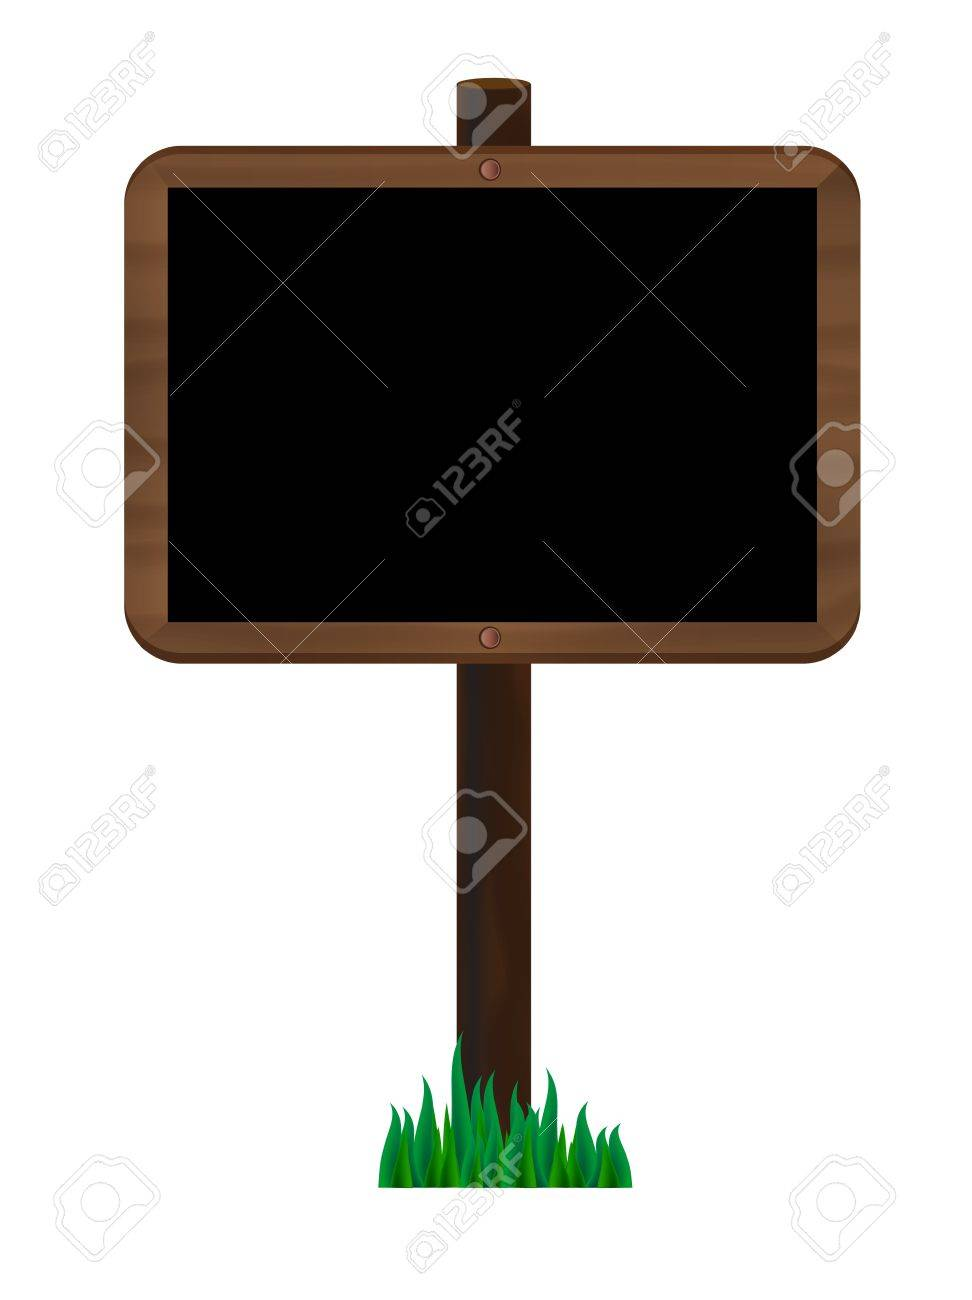 Wooden signpost Stock Vector - 14109282